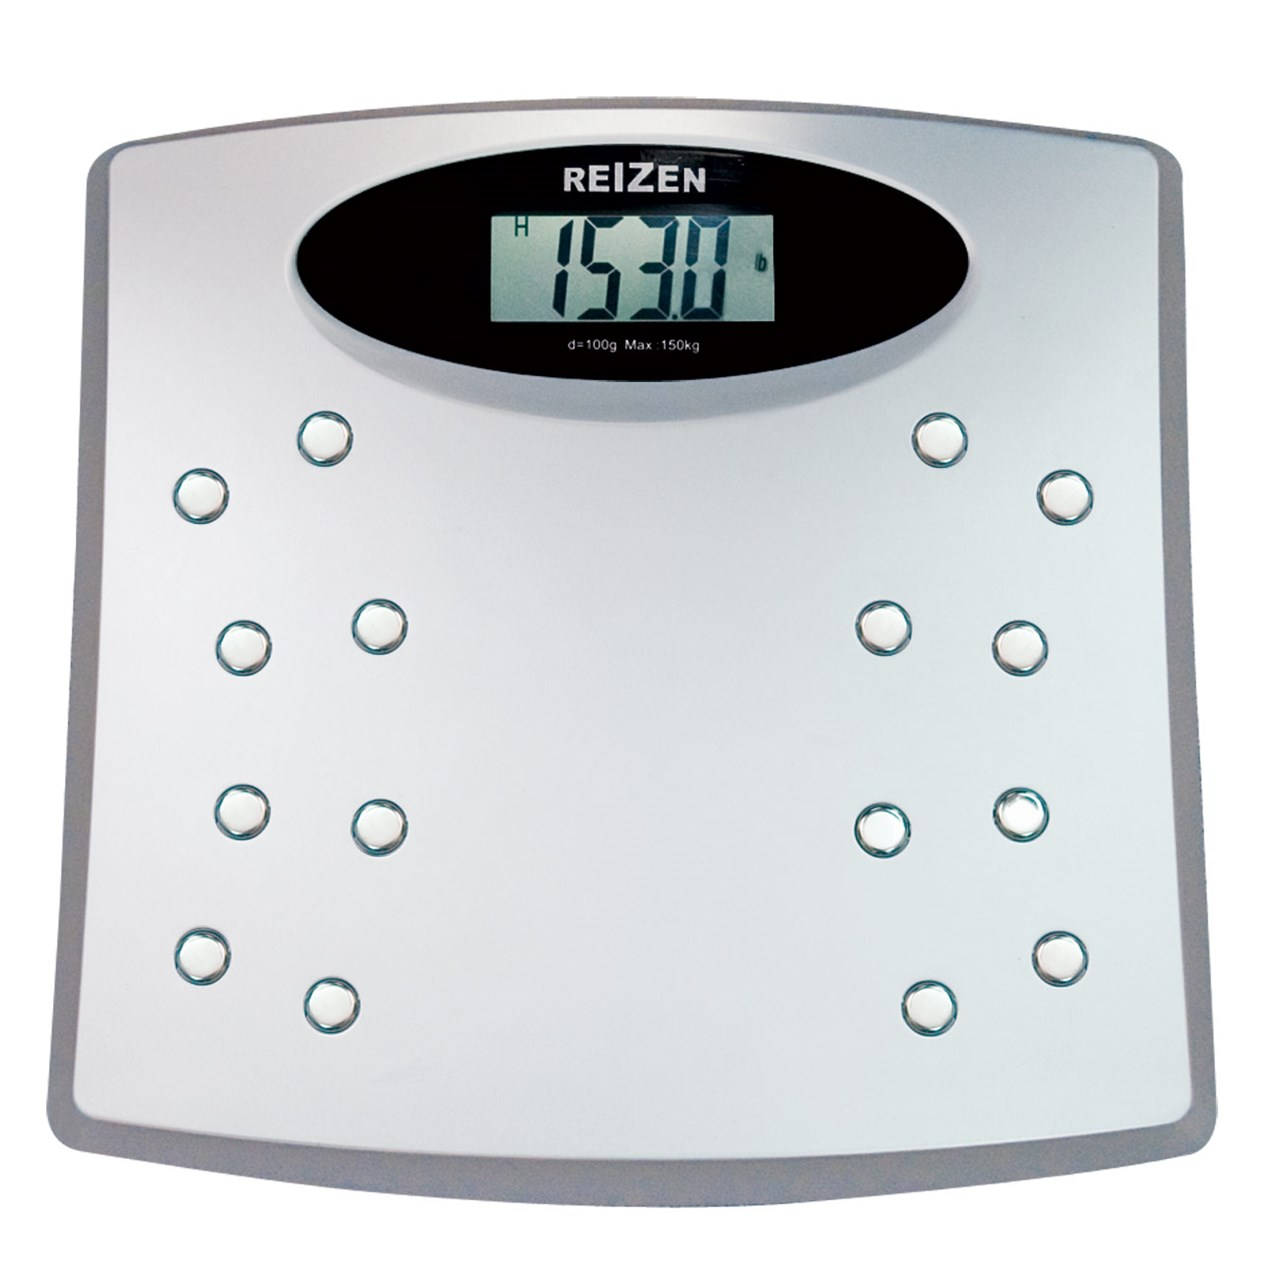 maxiaids talking bathroom scale